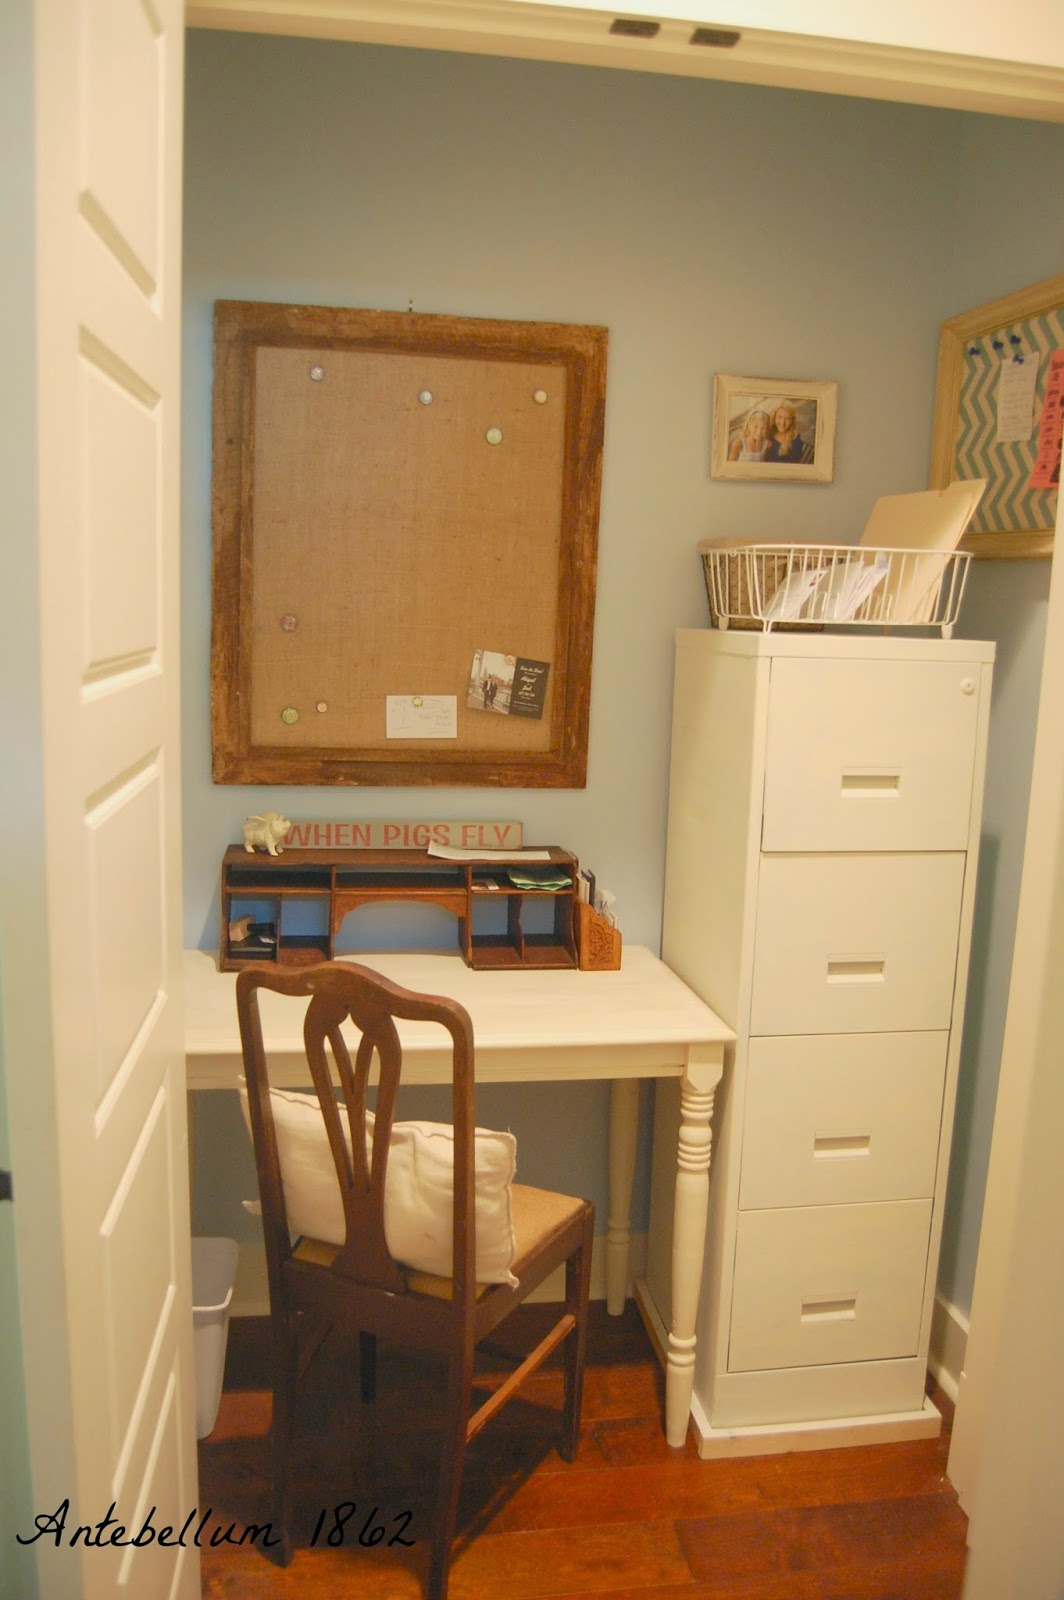 Antebellum 1862 how to turn a junky closet into a home office - An office turned into a home ...